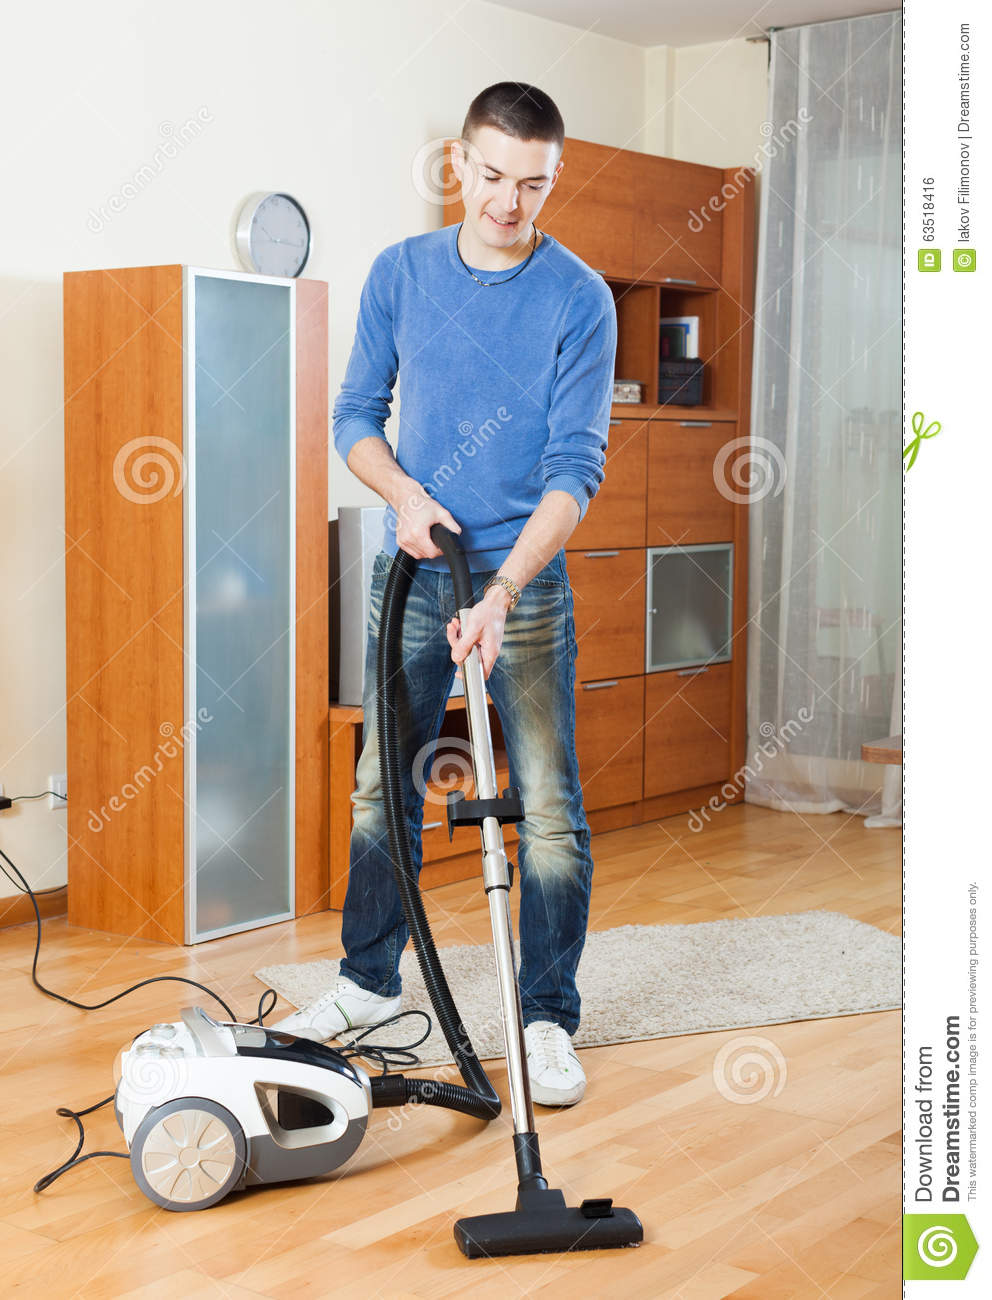 Man Cleaning With Vacuum Cleaner In Living Room Stock